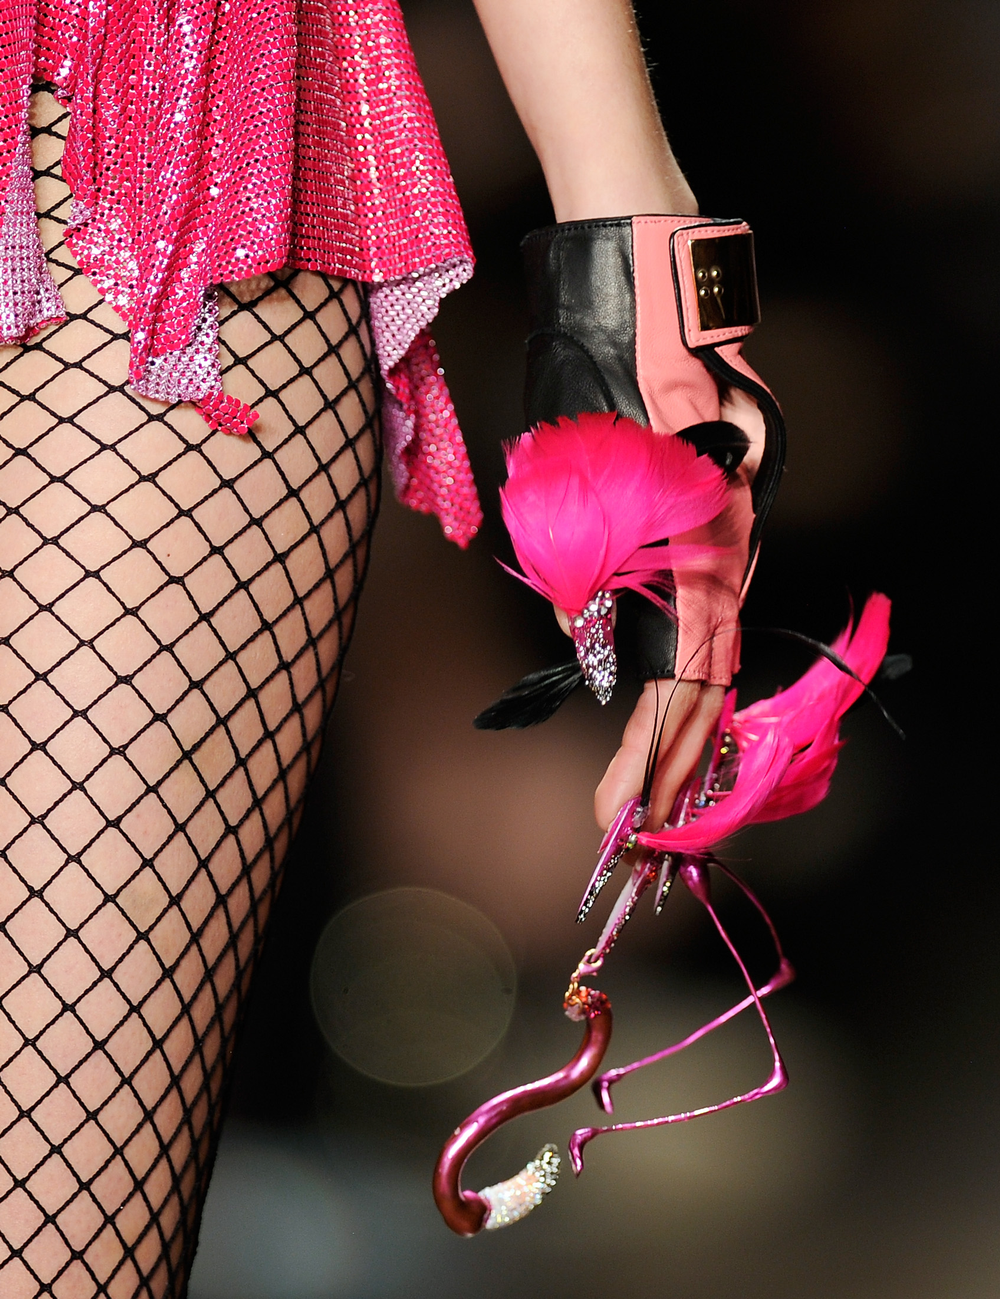 <p>Flamingo nails by Torie Bastian for the Blonds</p>